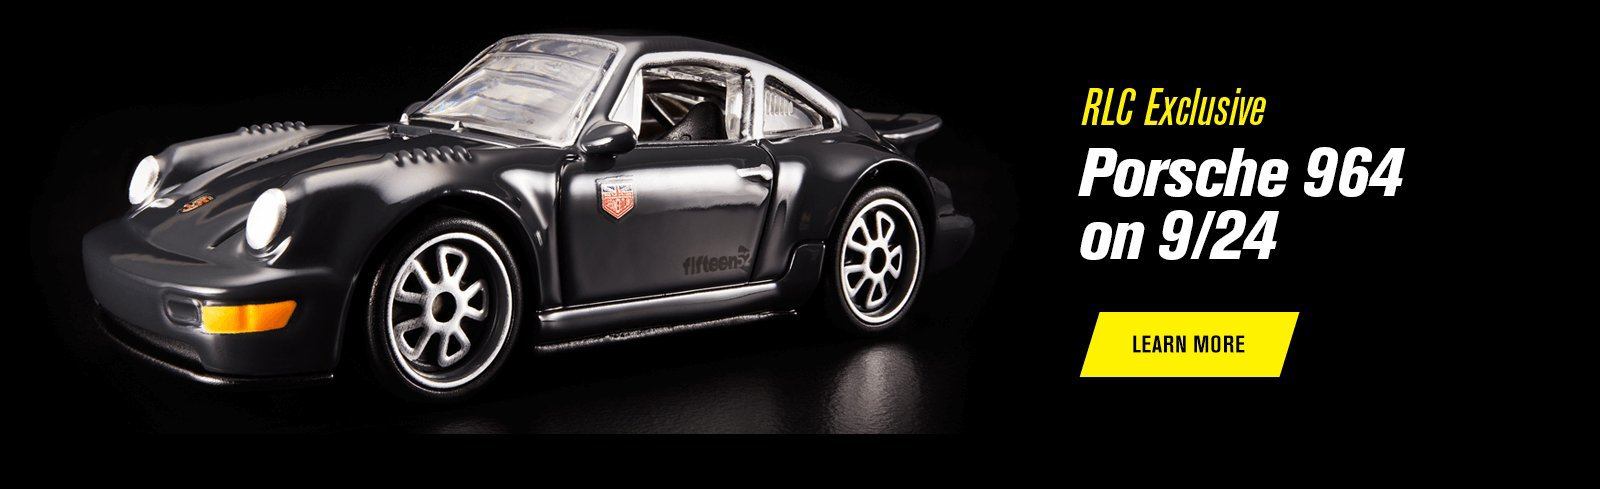 RLC Exclusive Porsche 964 on 9/17